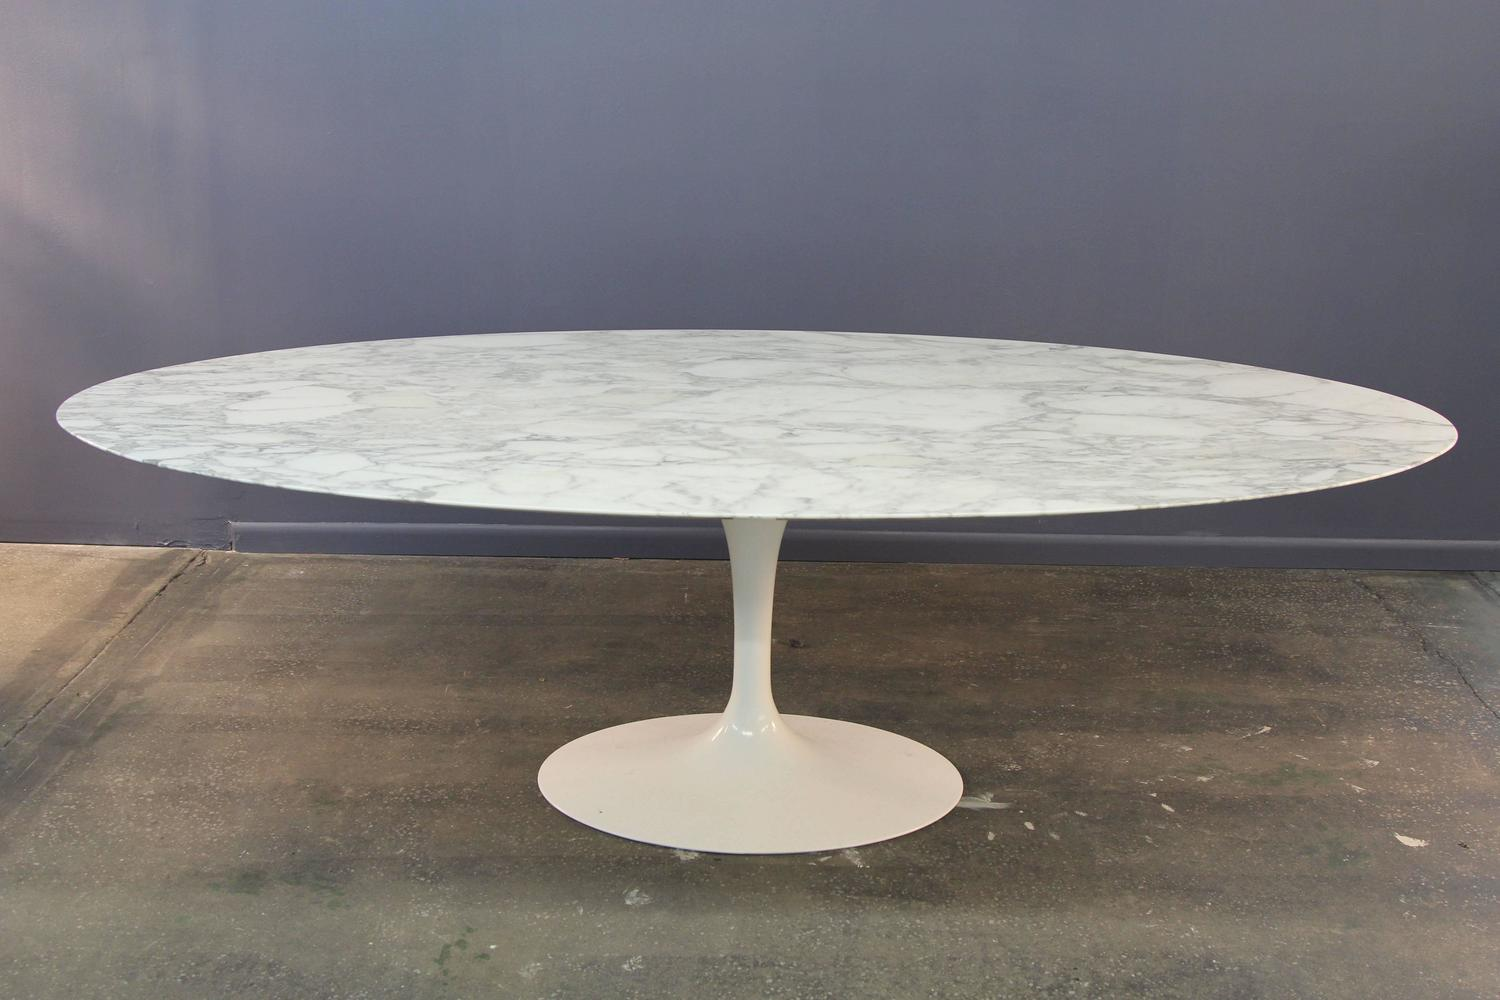 eero saarinen marble top oval dining table for knoll at 1stdibs. Black Bedroom Furniture Sets. Home Design Ideas